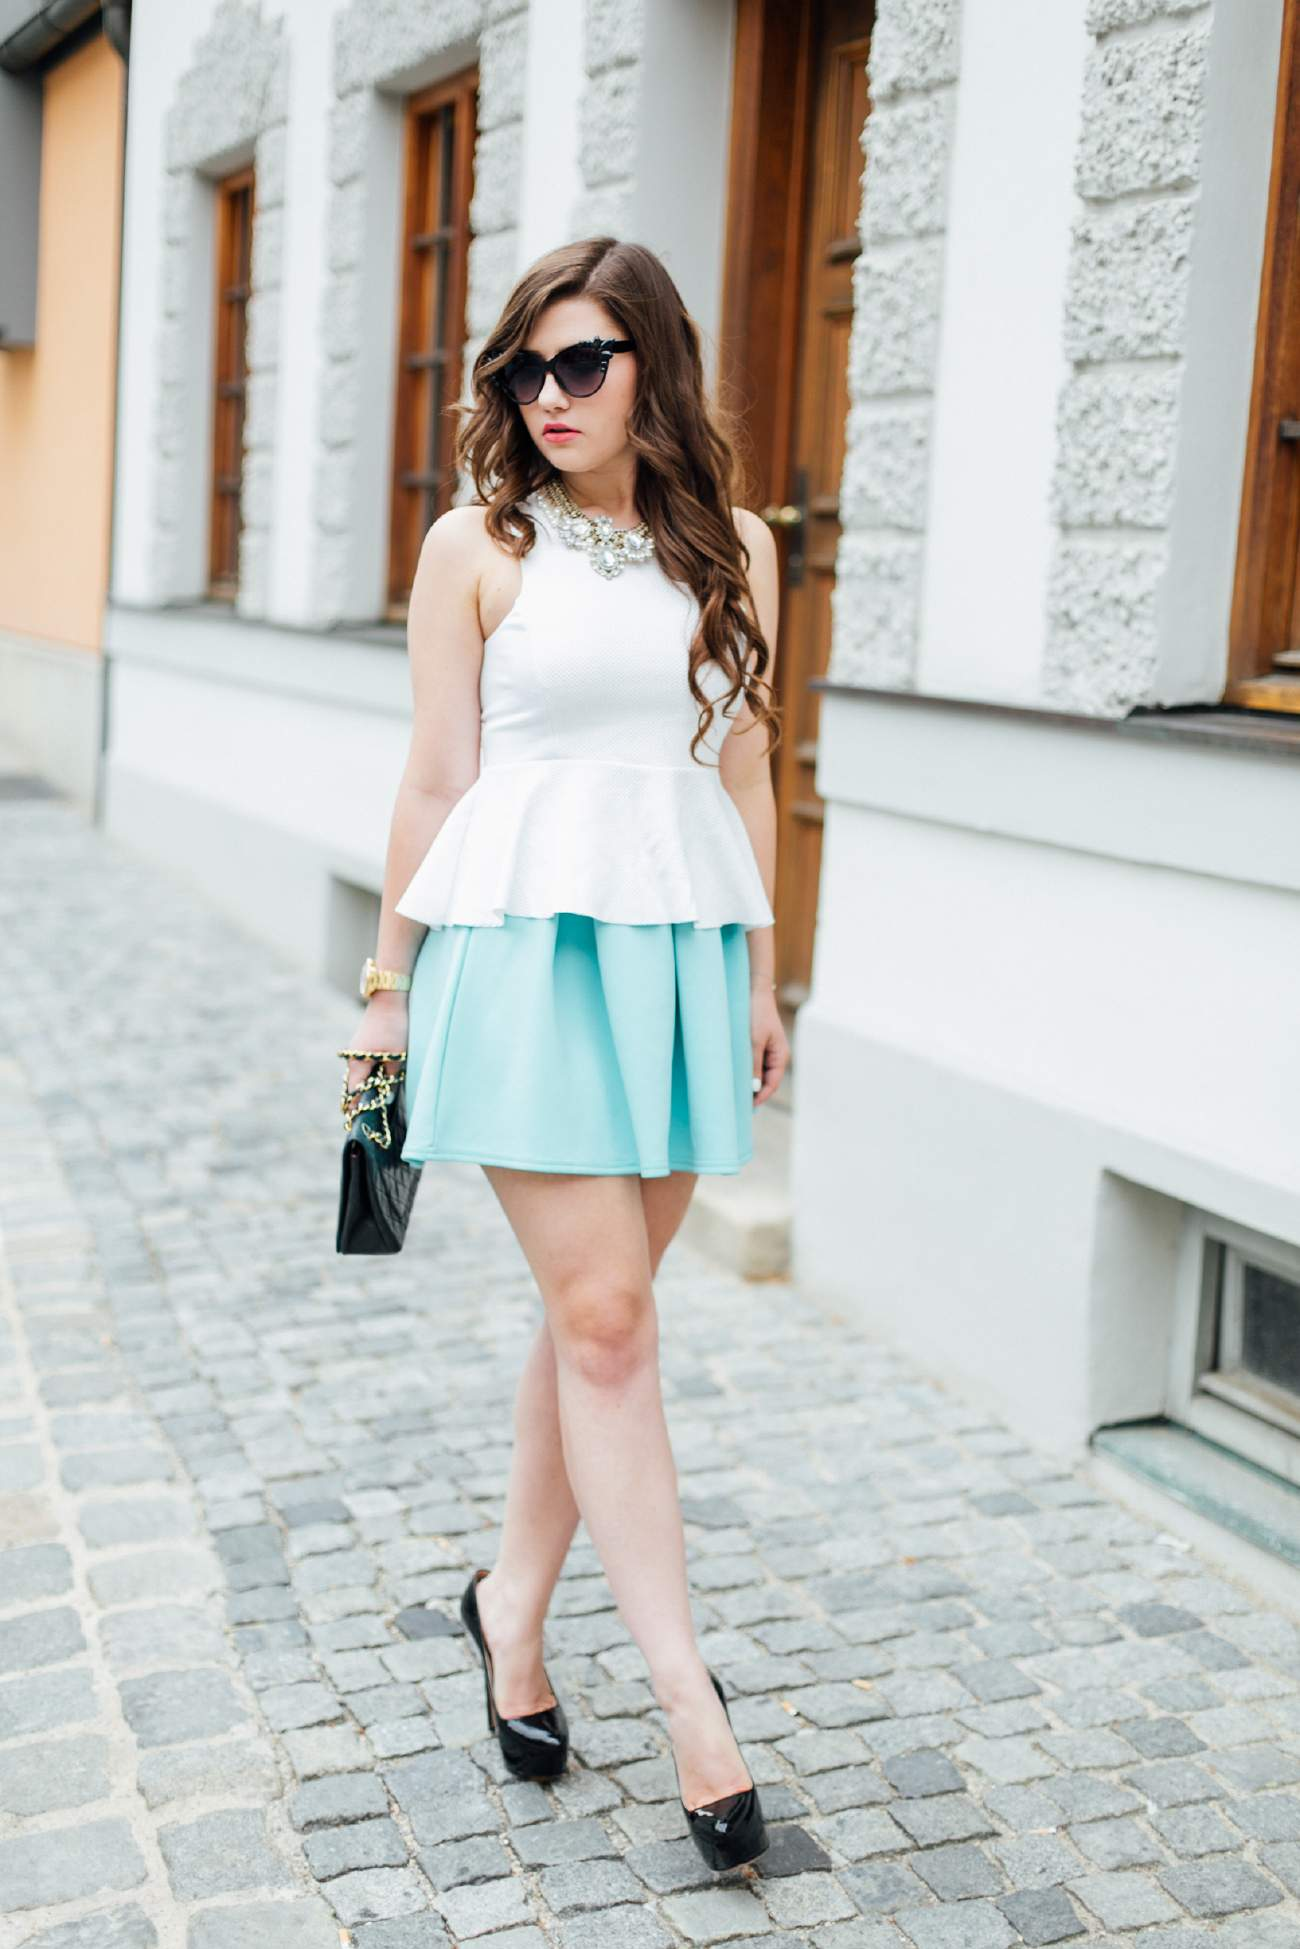 sara-bow-fashion-blogger-outfit-inspiration-muenchen-mode-blog-last-summer-days_58280_74055 (1)